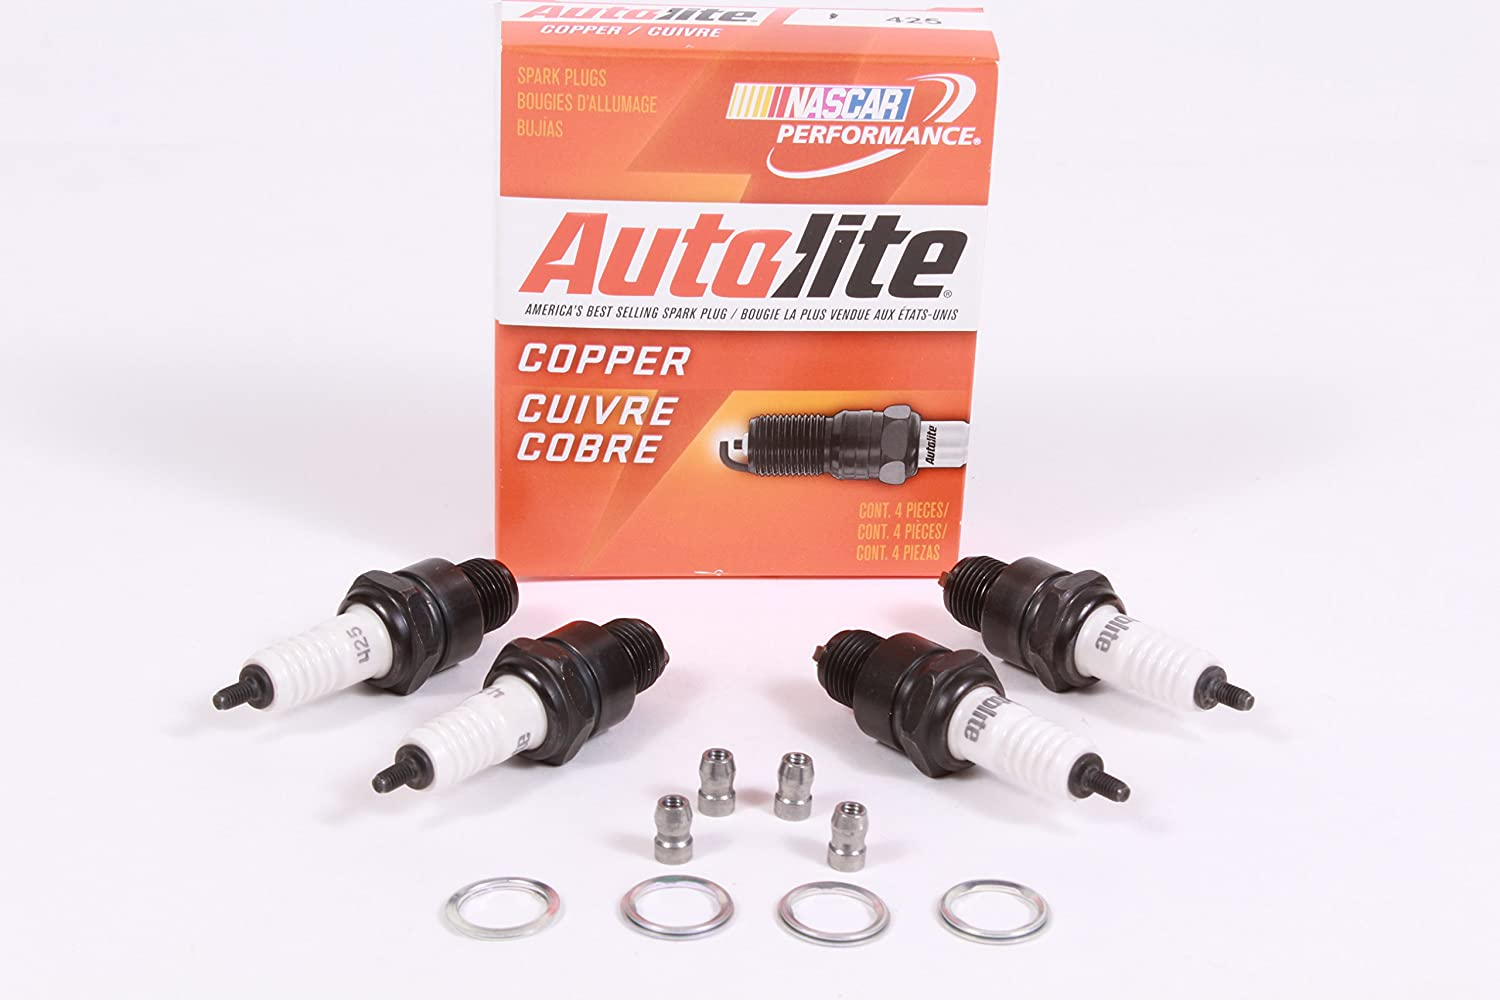 Amazon.com: Autolite Box of 4 Genuine 425 Copper Resistor Spark Plugs: Home & Kitchen